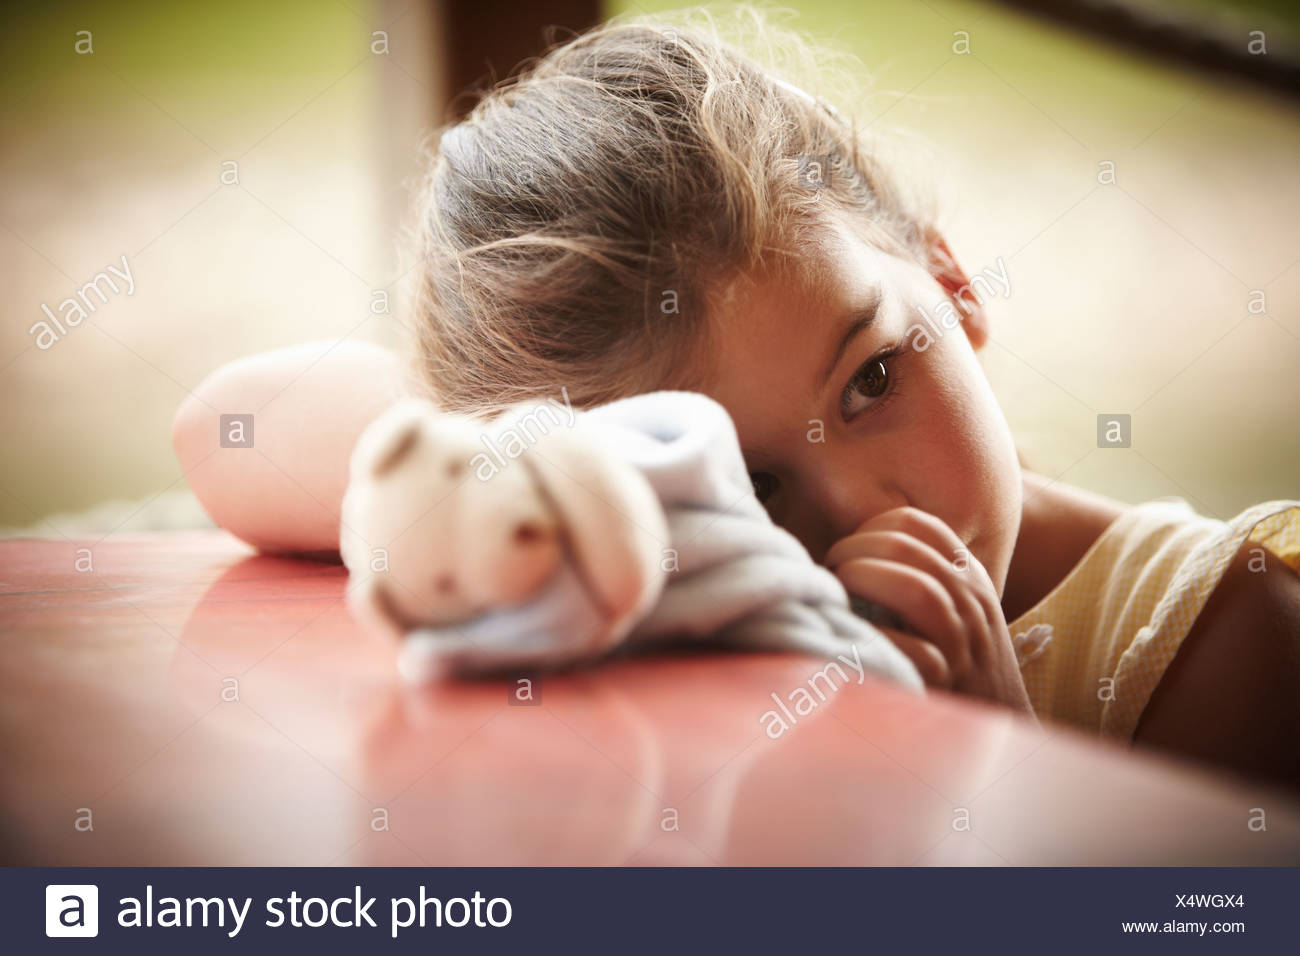 Close up of girl with stuffed animal sucking thumb - Stock Image